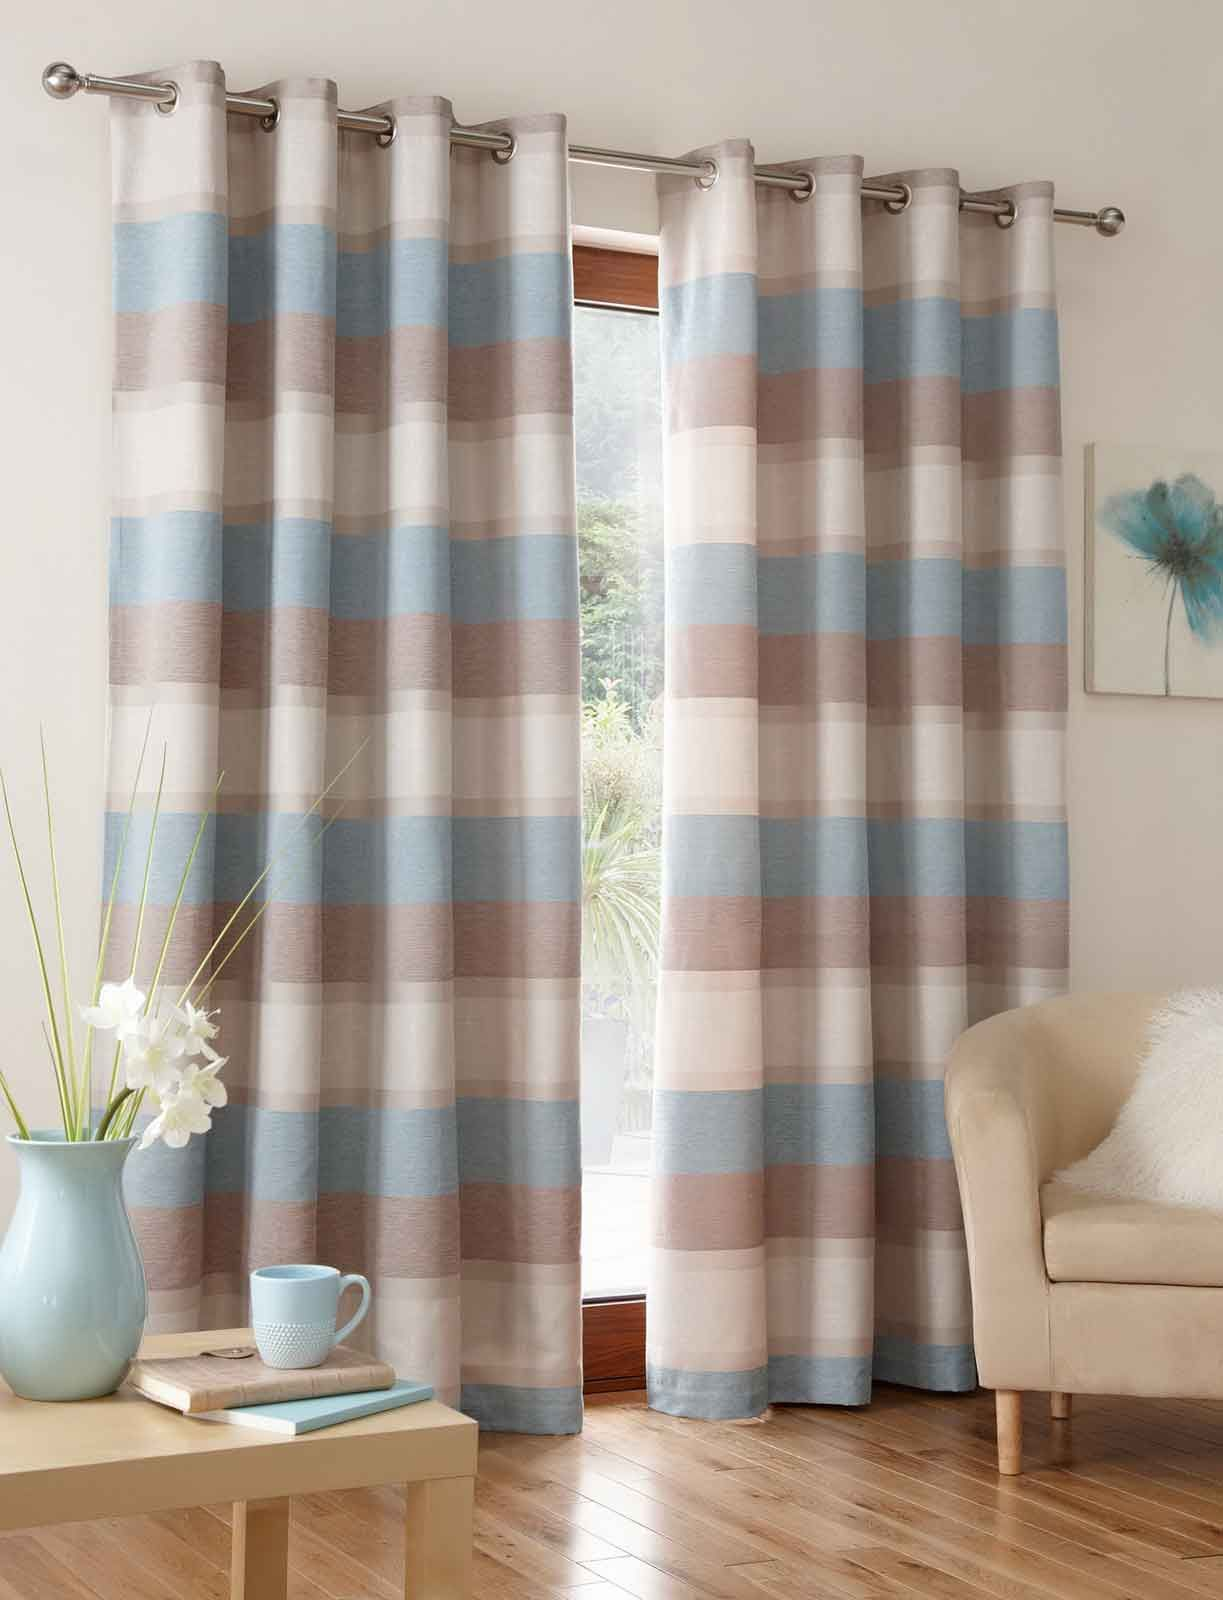 Green curtains for bedroom - Marvellous Blue Brown Bedroom Design Decobizzbrown Curtains Designs High Definition And Brown Curtains Designs Label